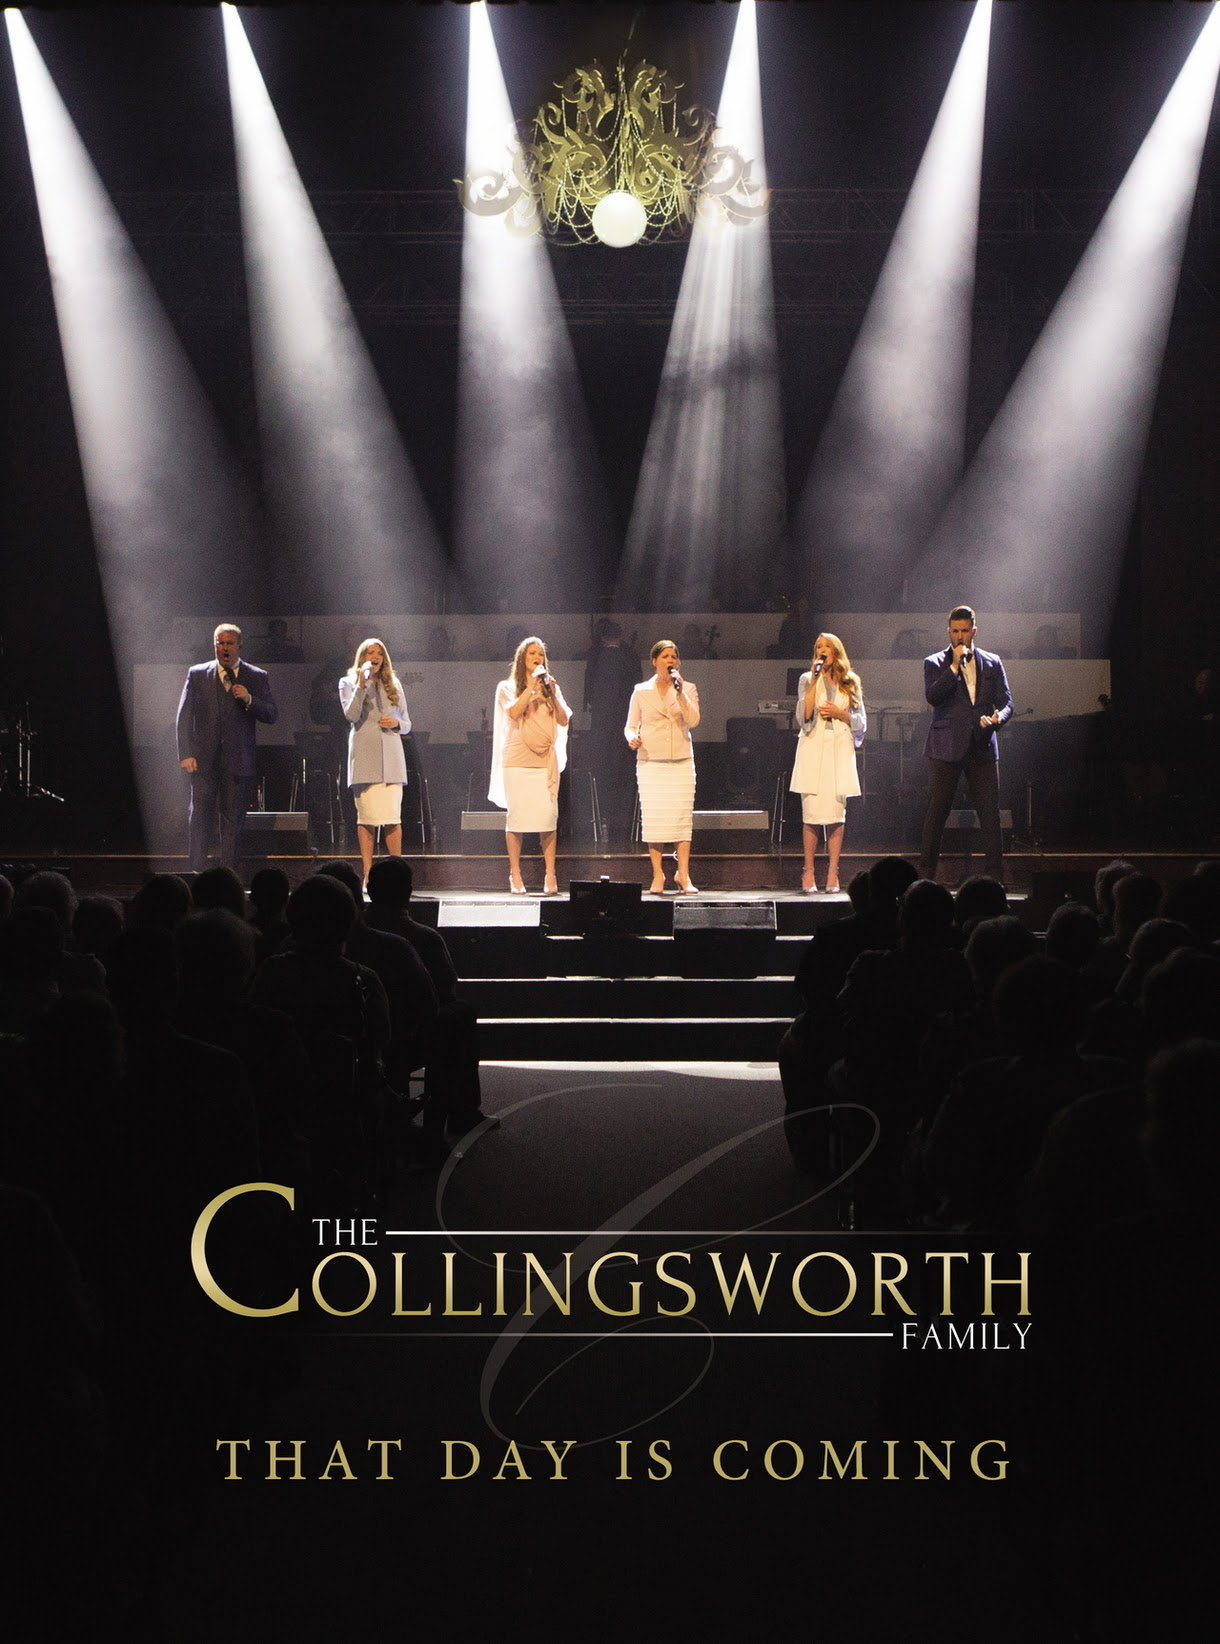 The Collingsworth Family Releases Landmark DVD Project